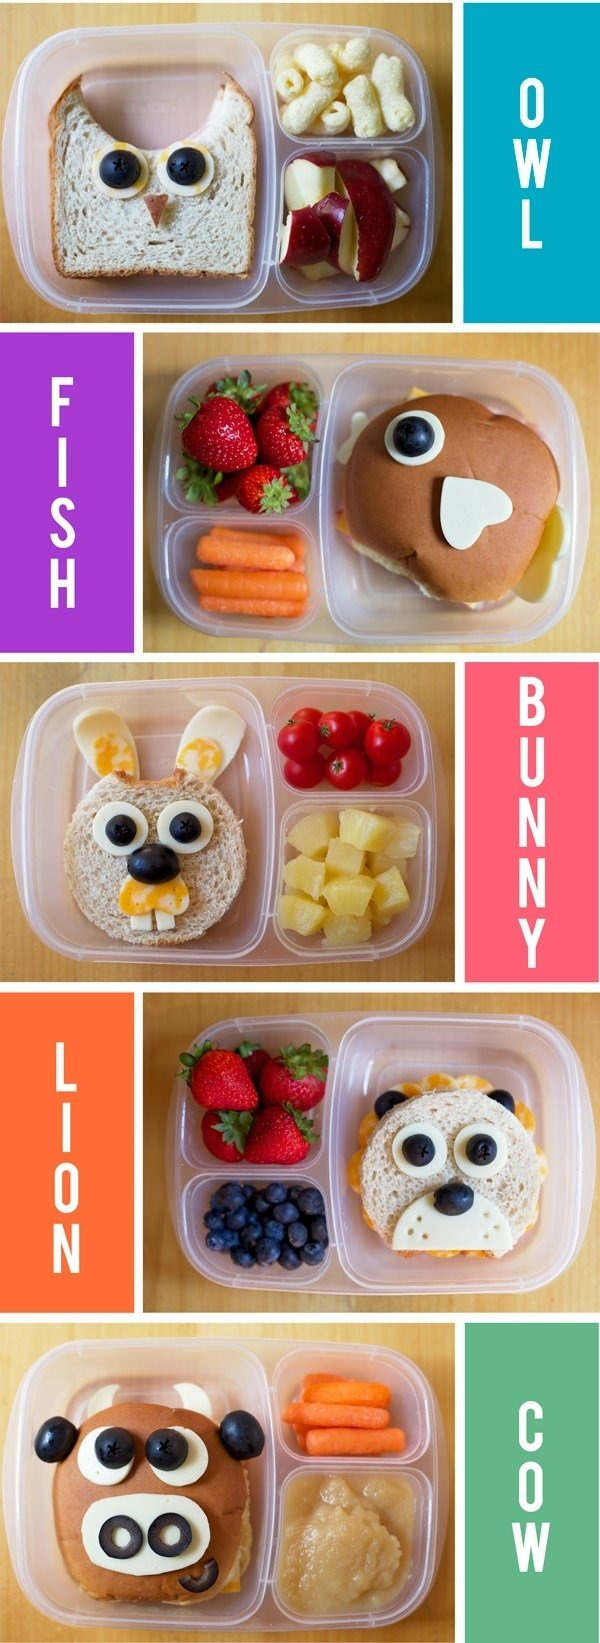 10 Great Lunch Box Ideas For Toddlers the best school lunch ideas for kids that are fun and easy 4 2021